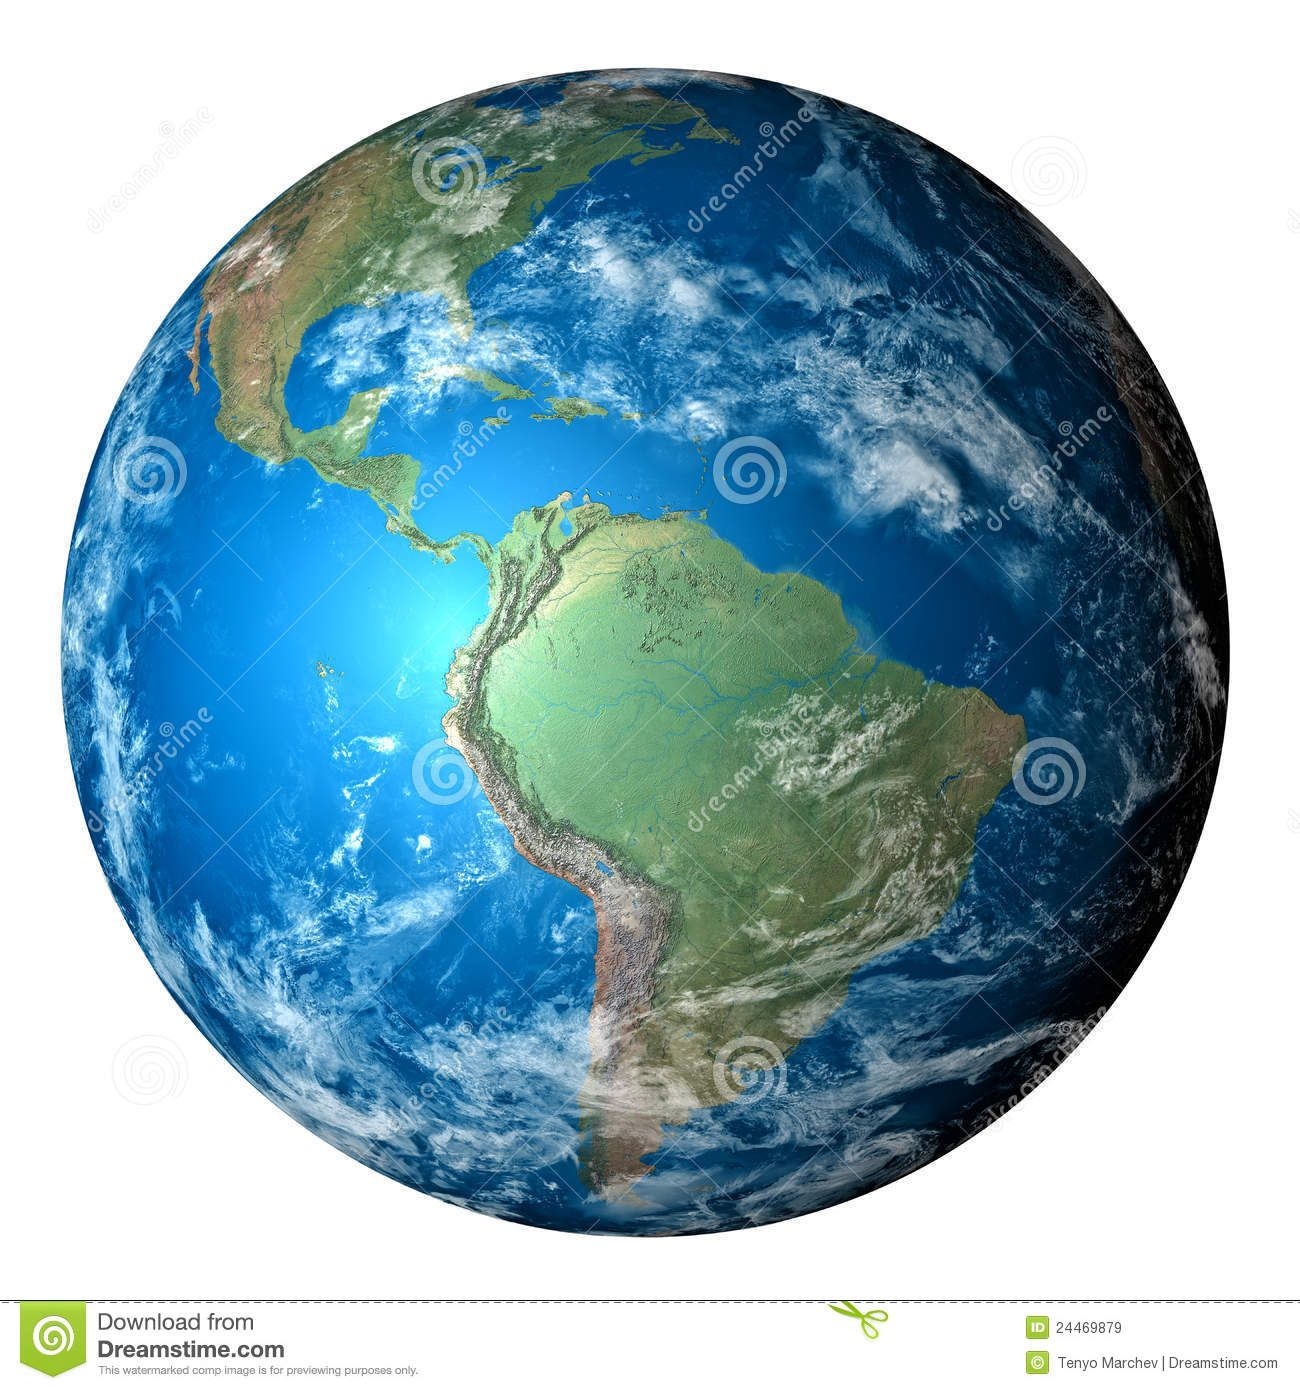 Photo Realistic Planet Earth In Transparent Background Download From Over 48 Million High Quality Stock Photos Images Vector Risunki Planety Prirodovedenie